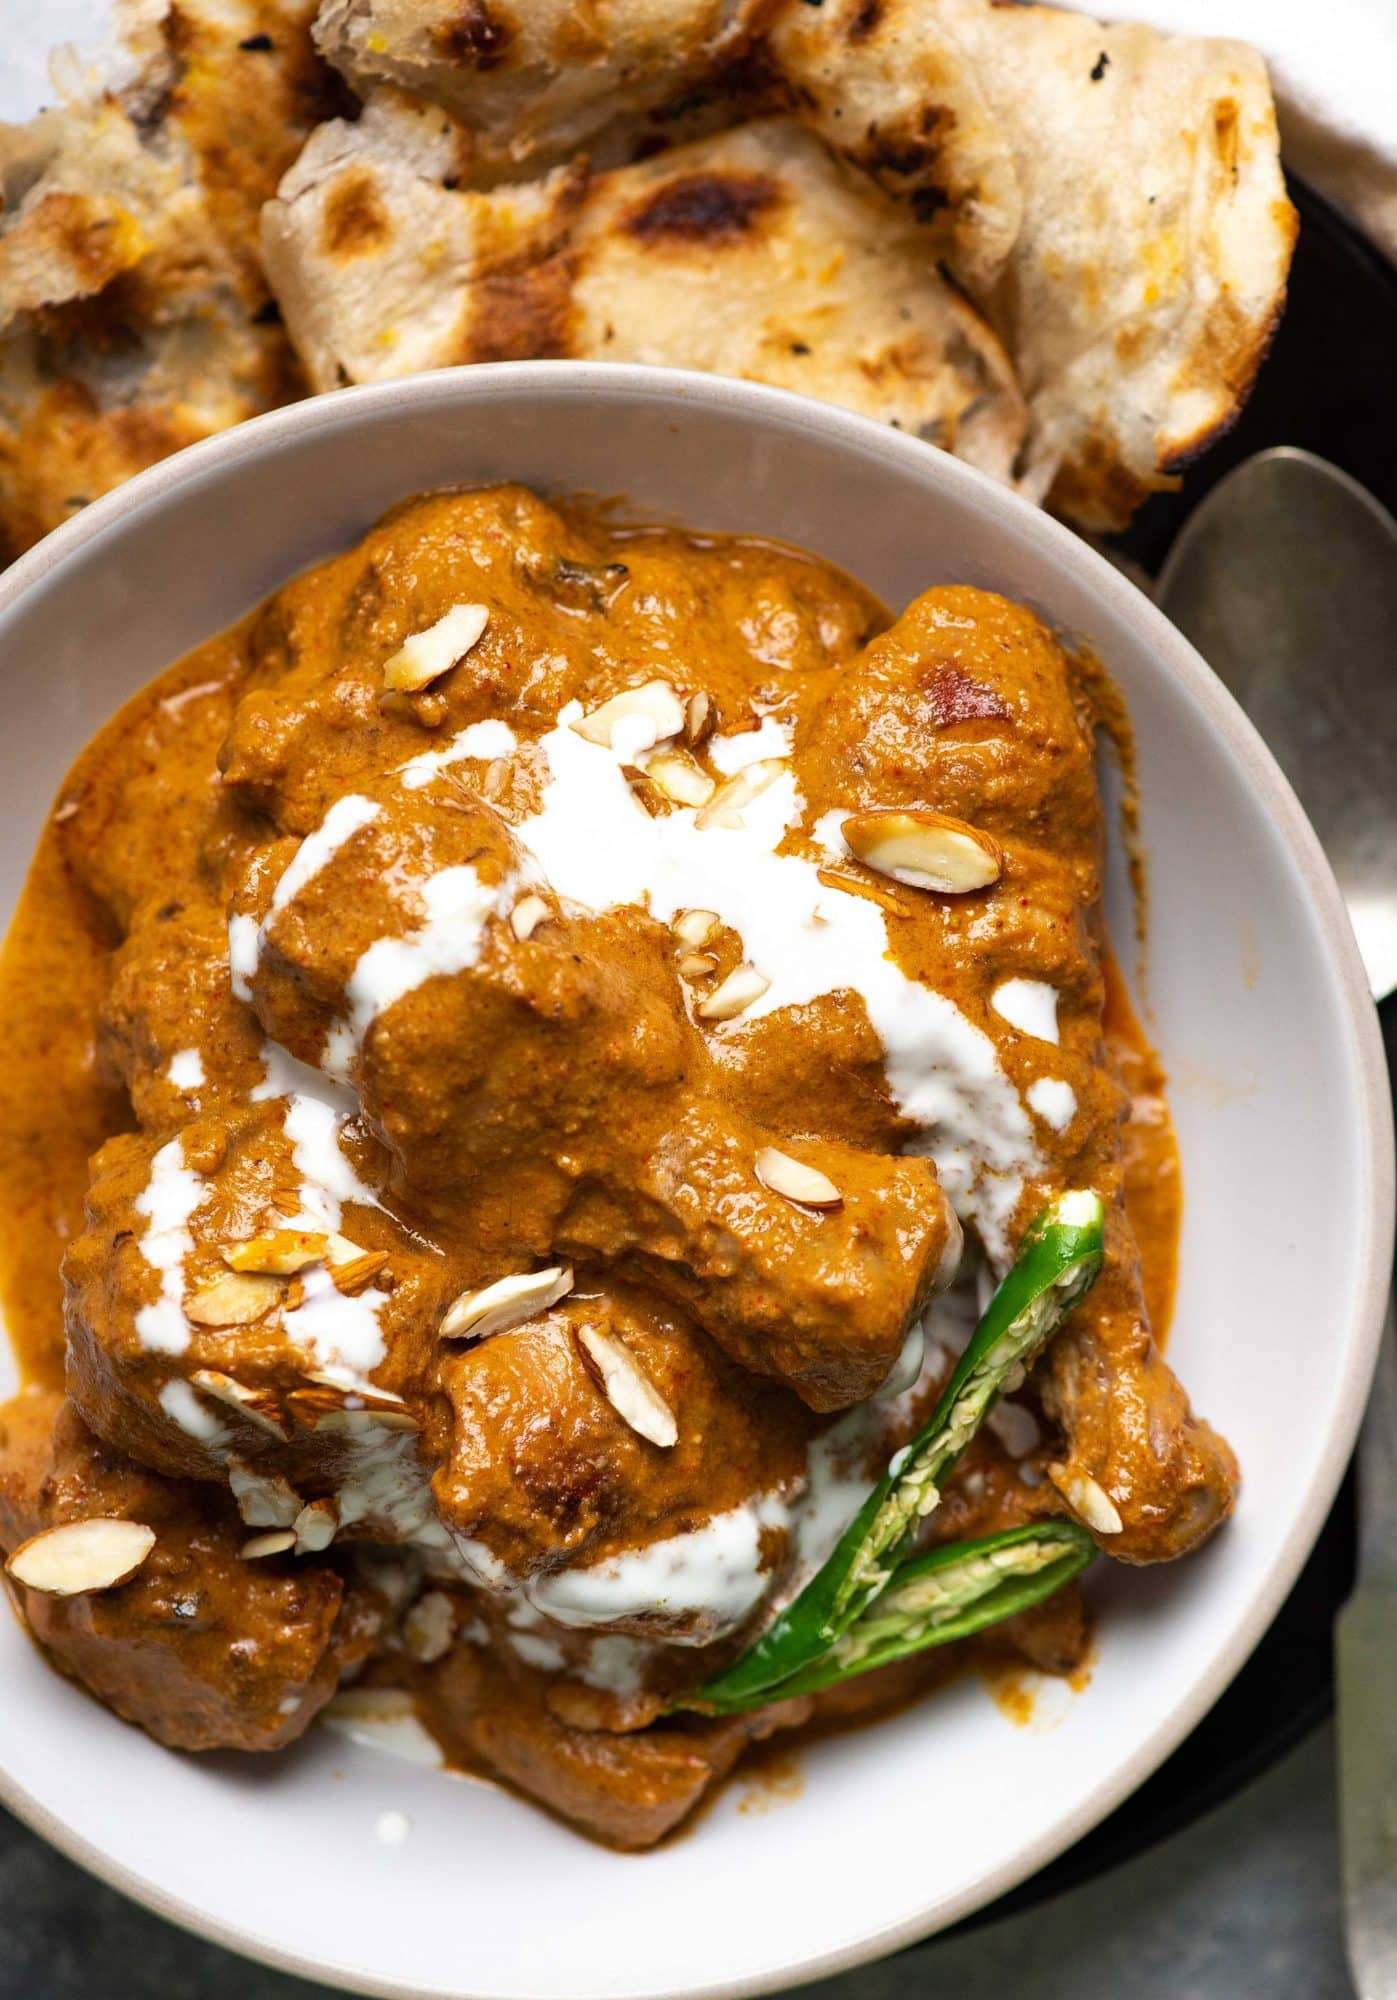 Chicken korma in a white plate with chillies, almonds and cream.